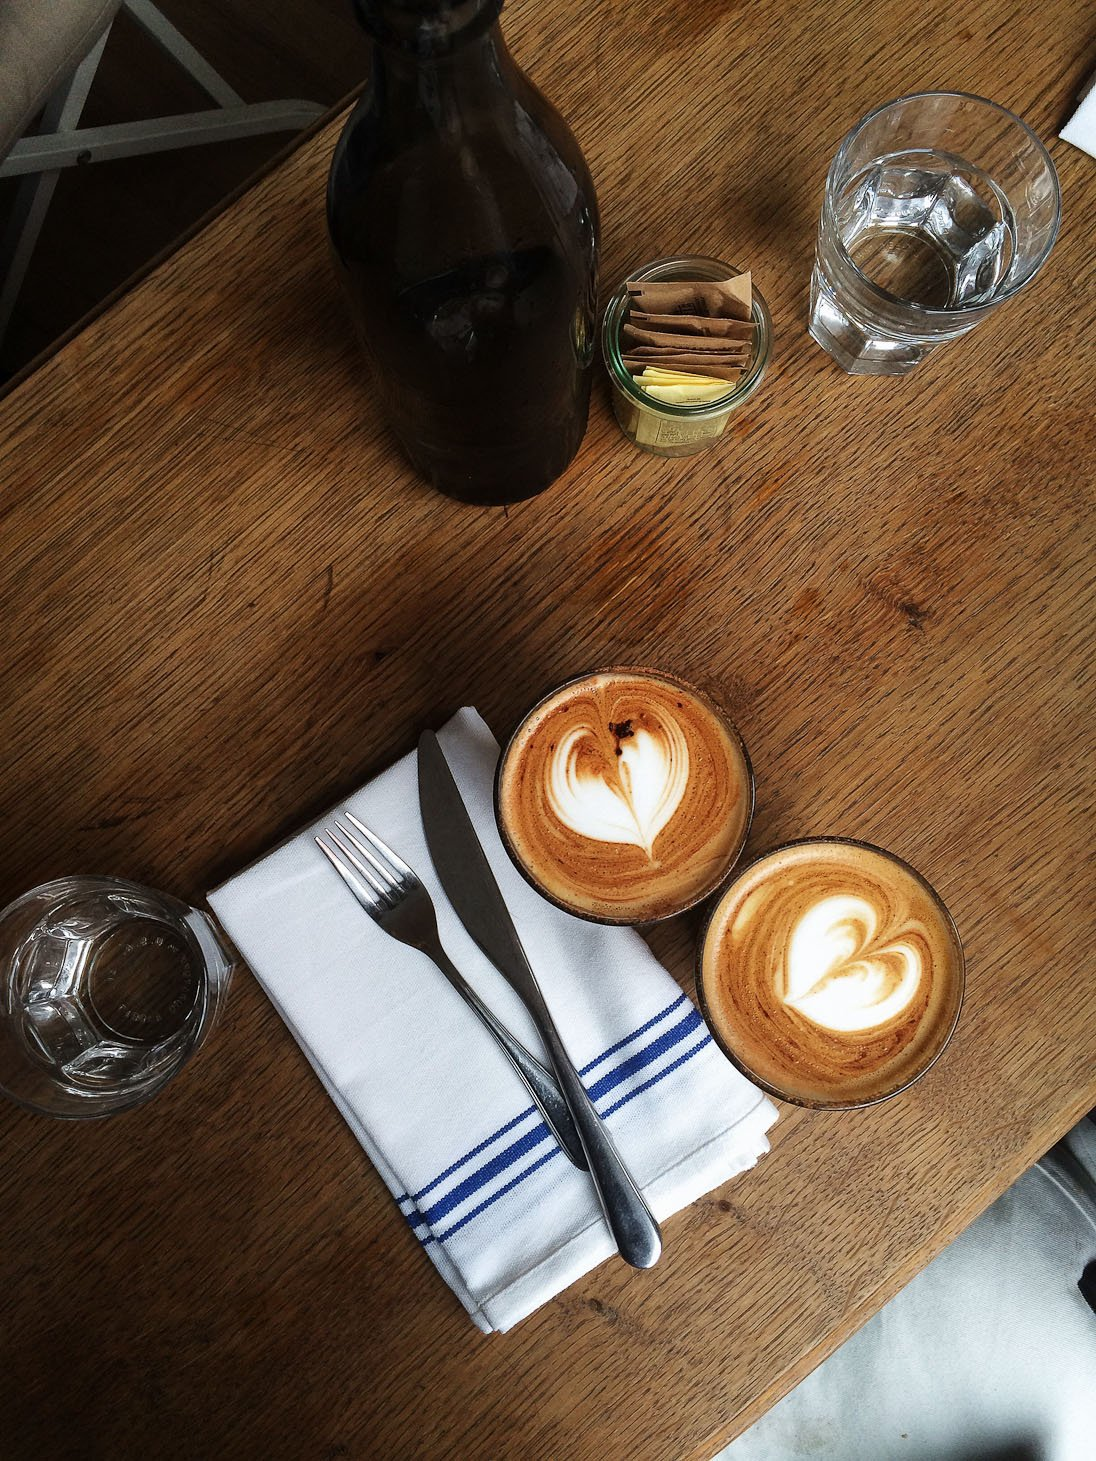 bluestone lane coffee cafe west village brunch healthy gluten free cortado latte banana bread